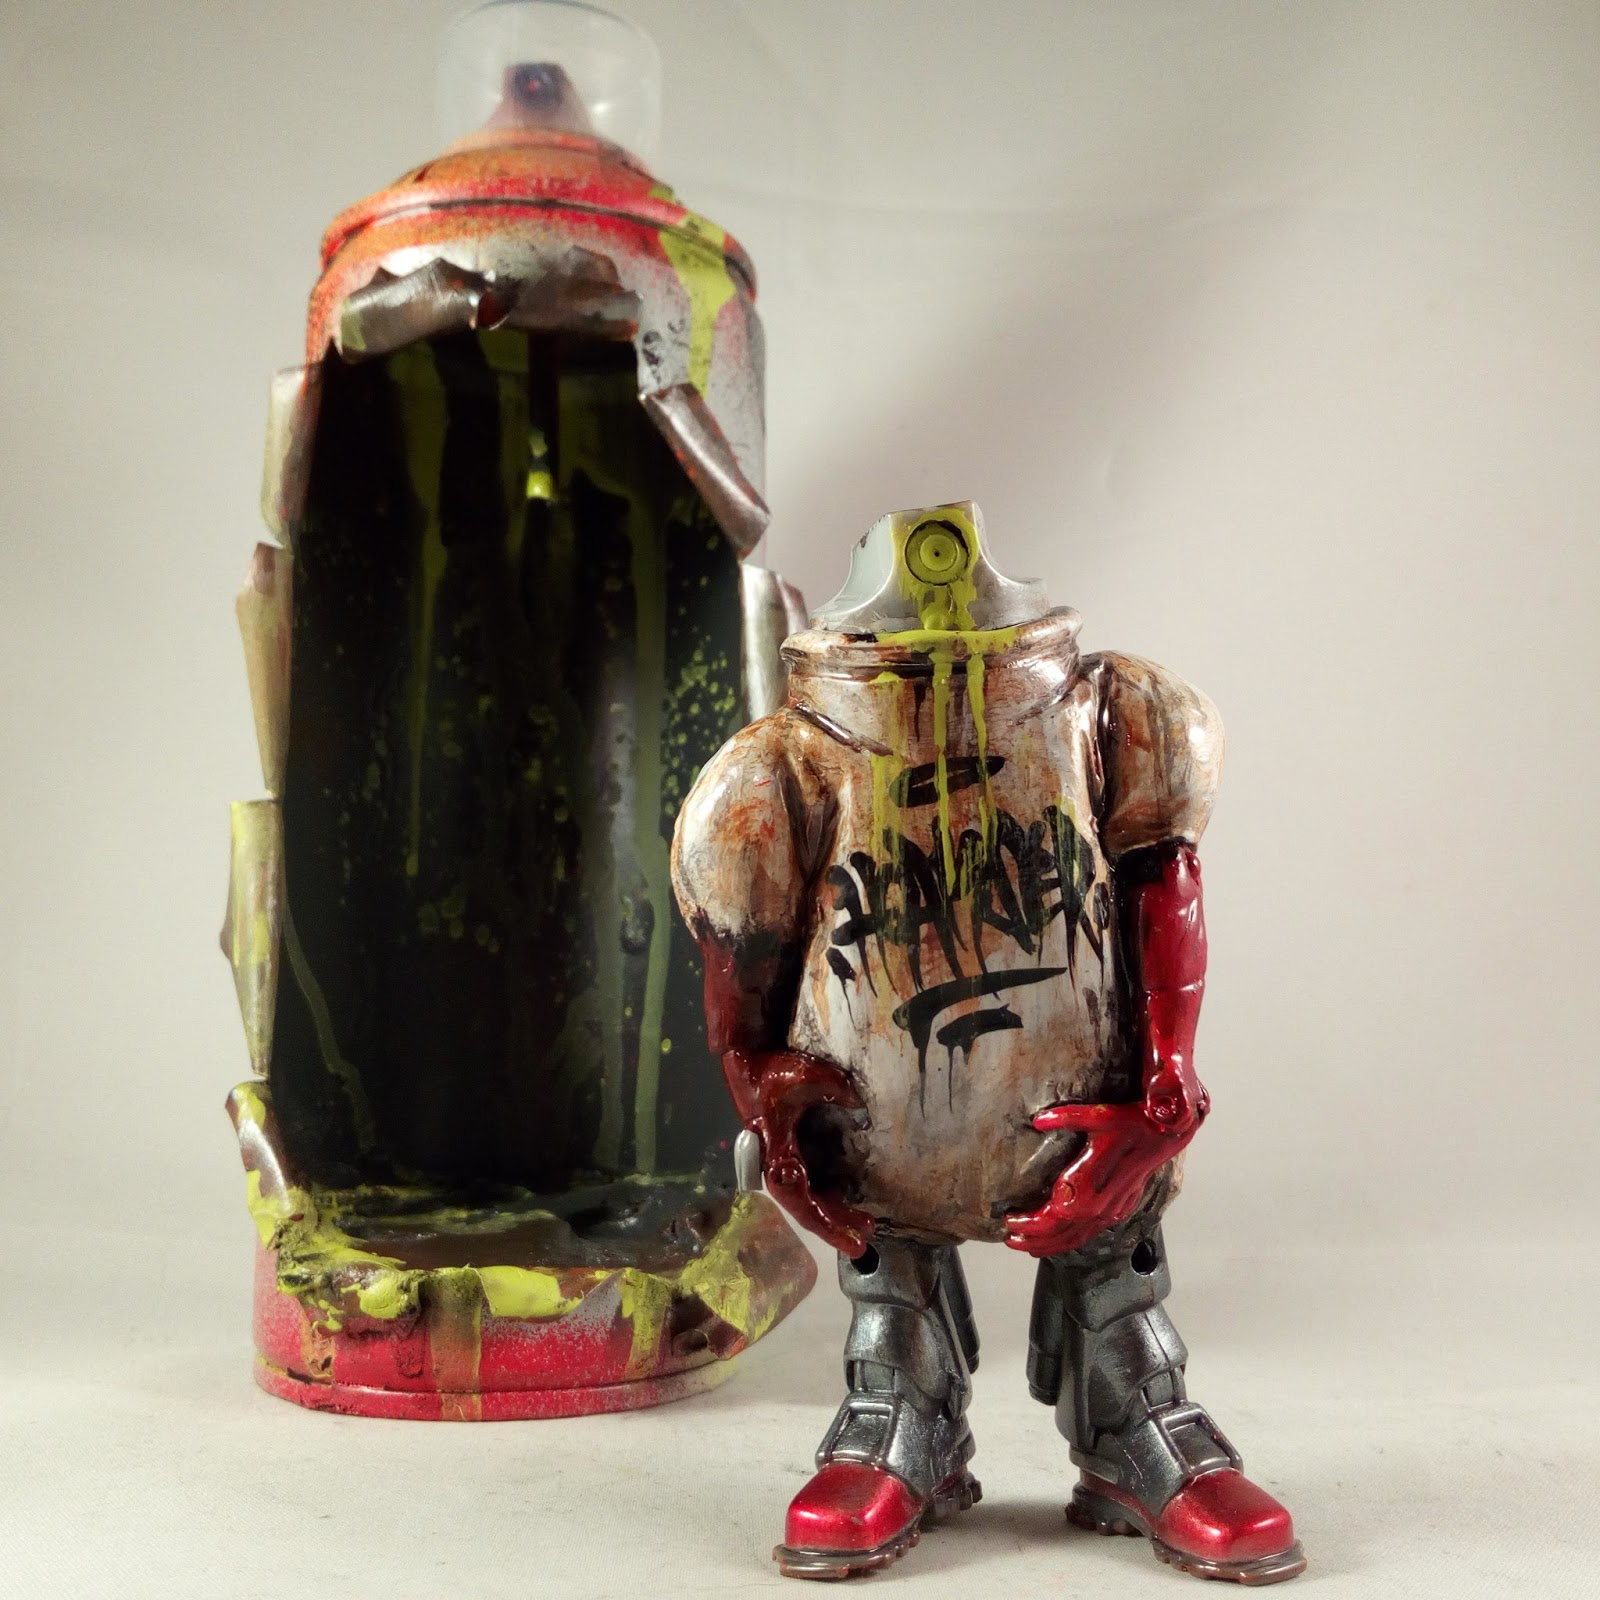 hoakser's blog: TOY PART MASHUPS IN SPRAY CANS